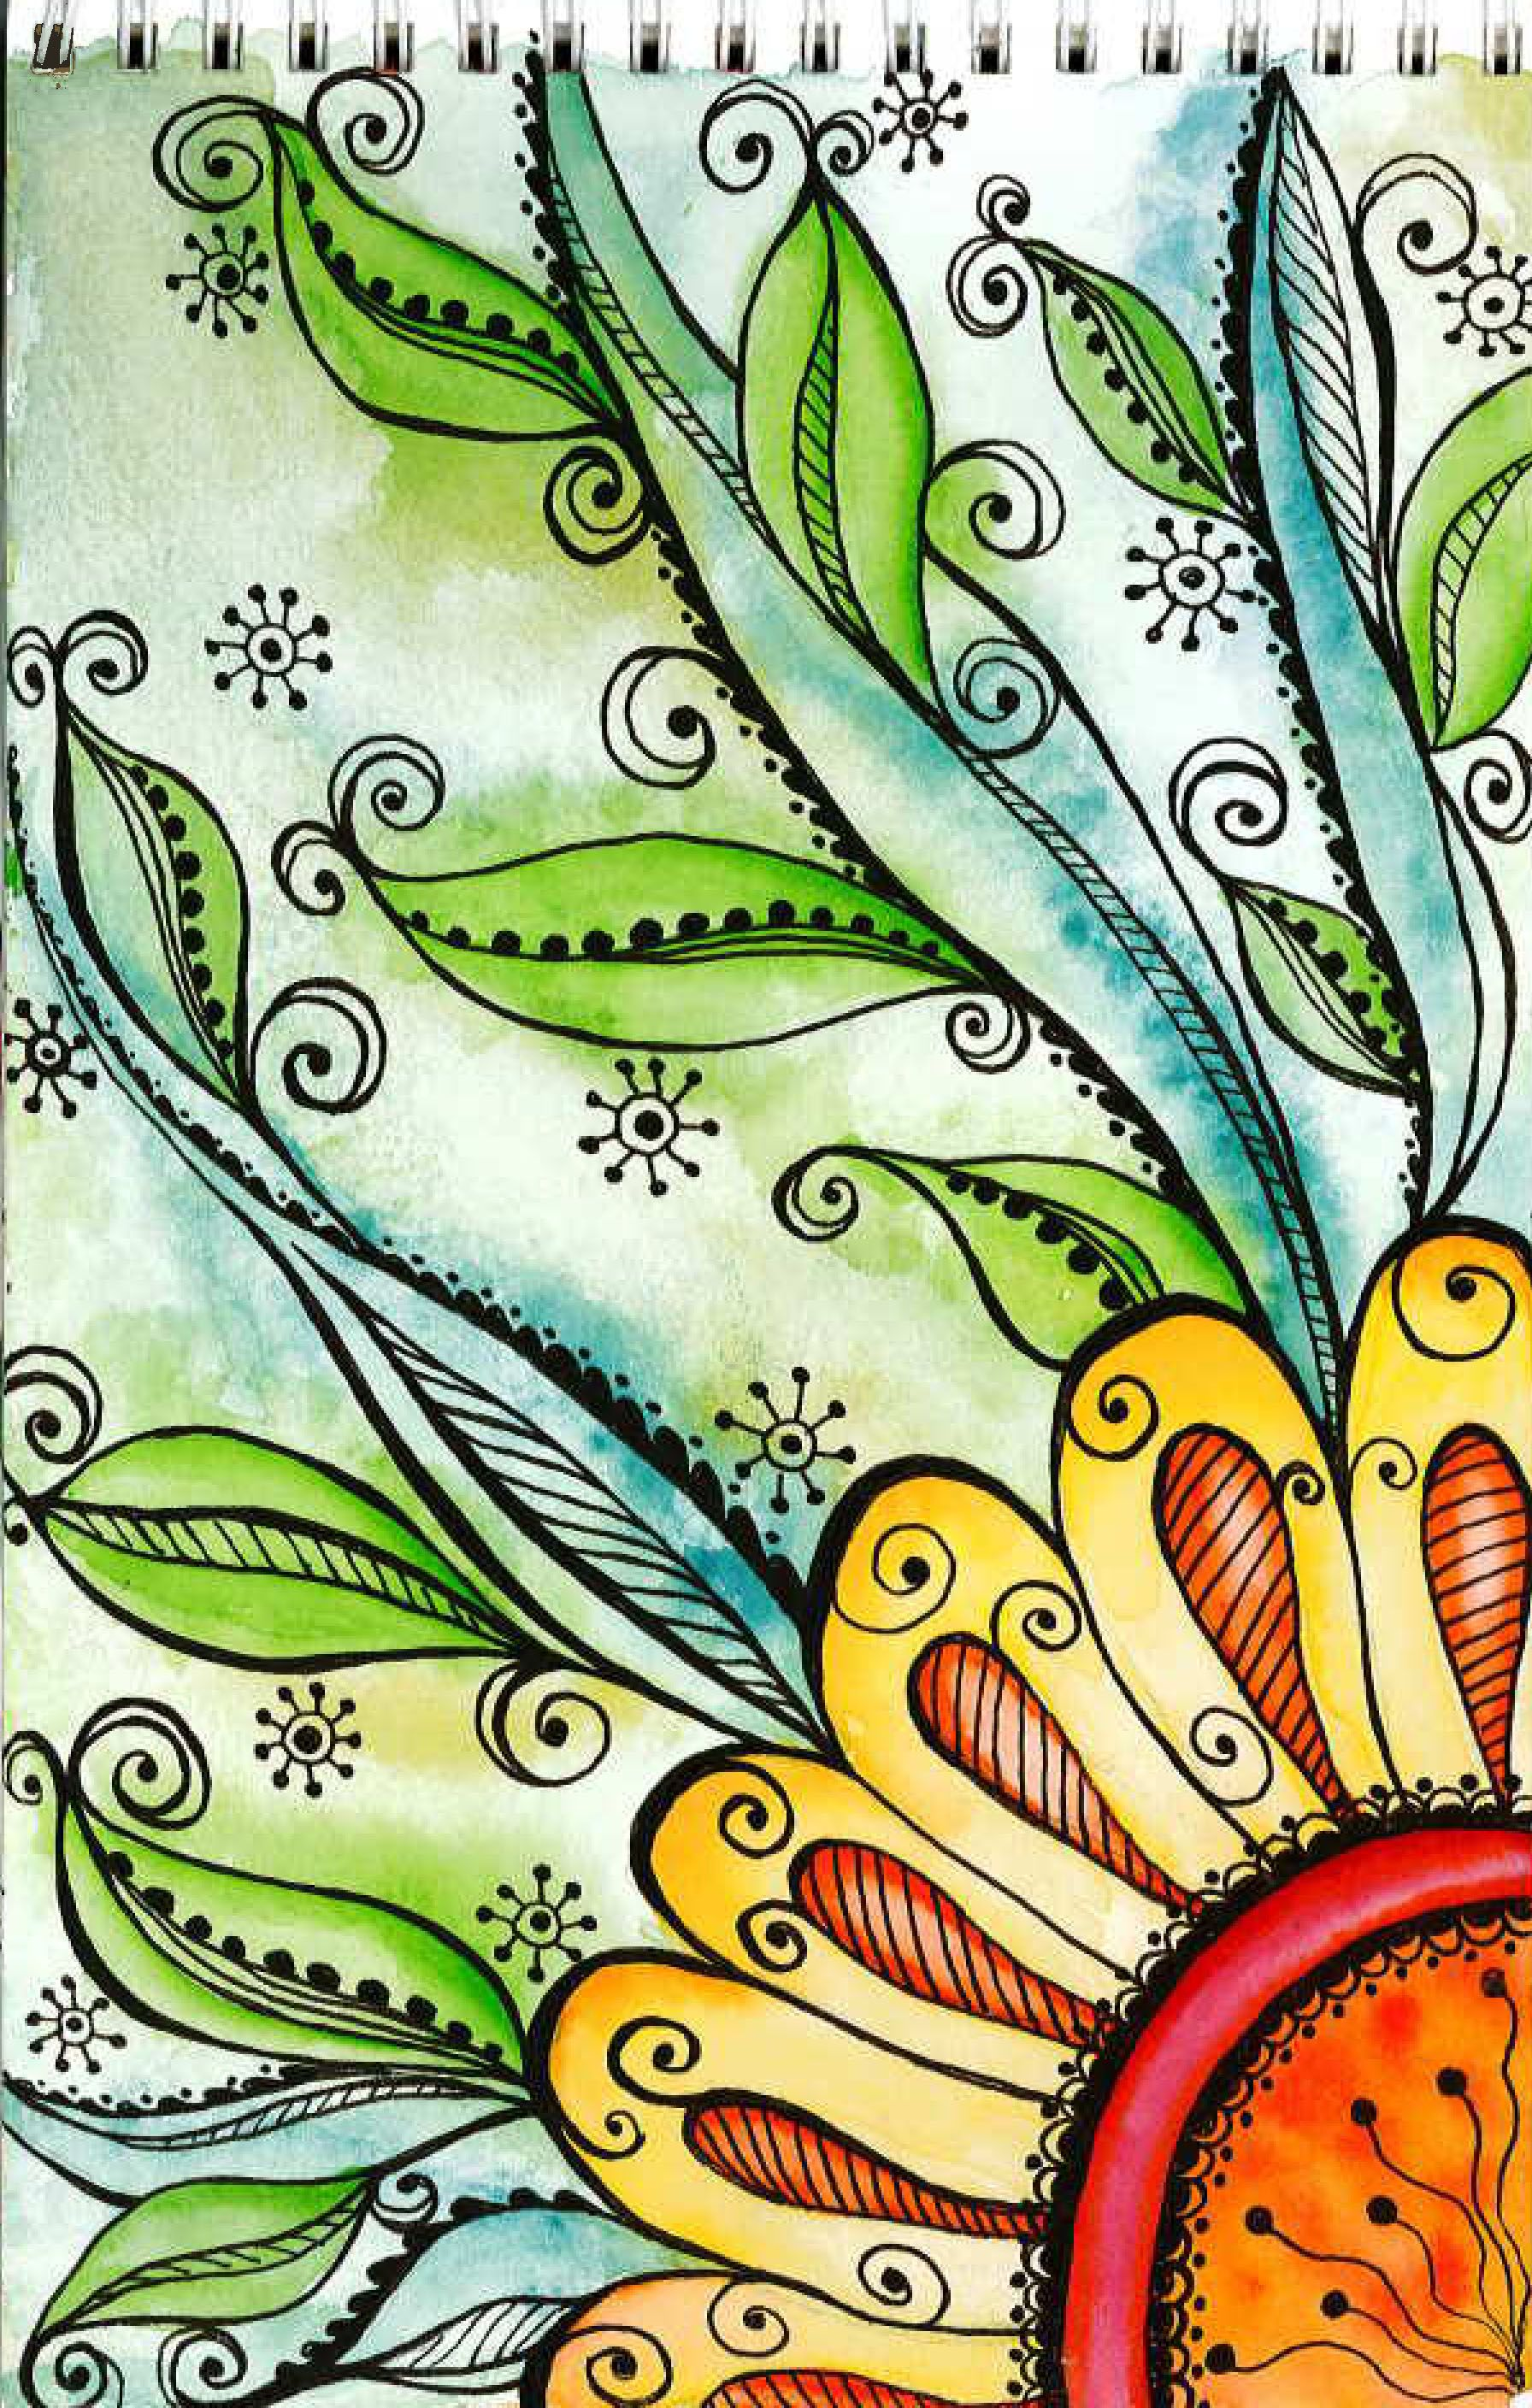 Zen doodle colour - Sharpie Doodle Filled With Water Color And More Sharpie Doodle Embellishments Zentangle Style